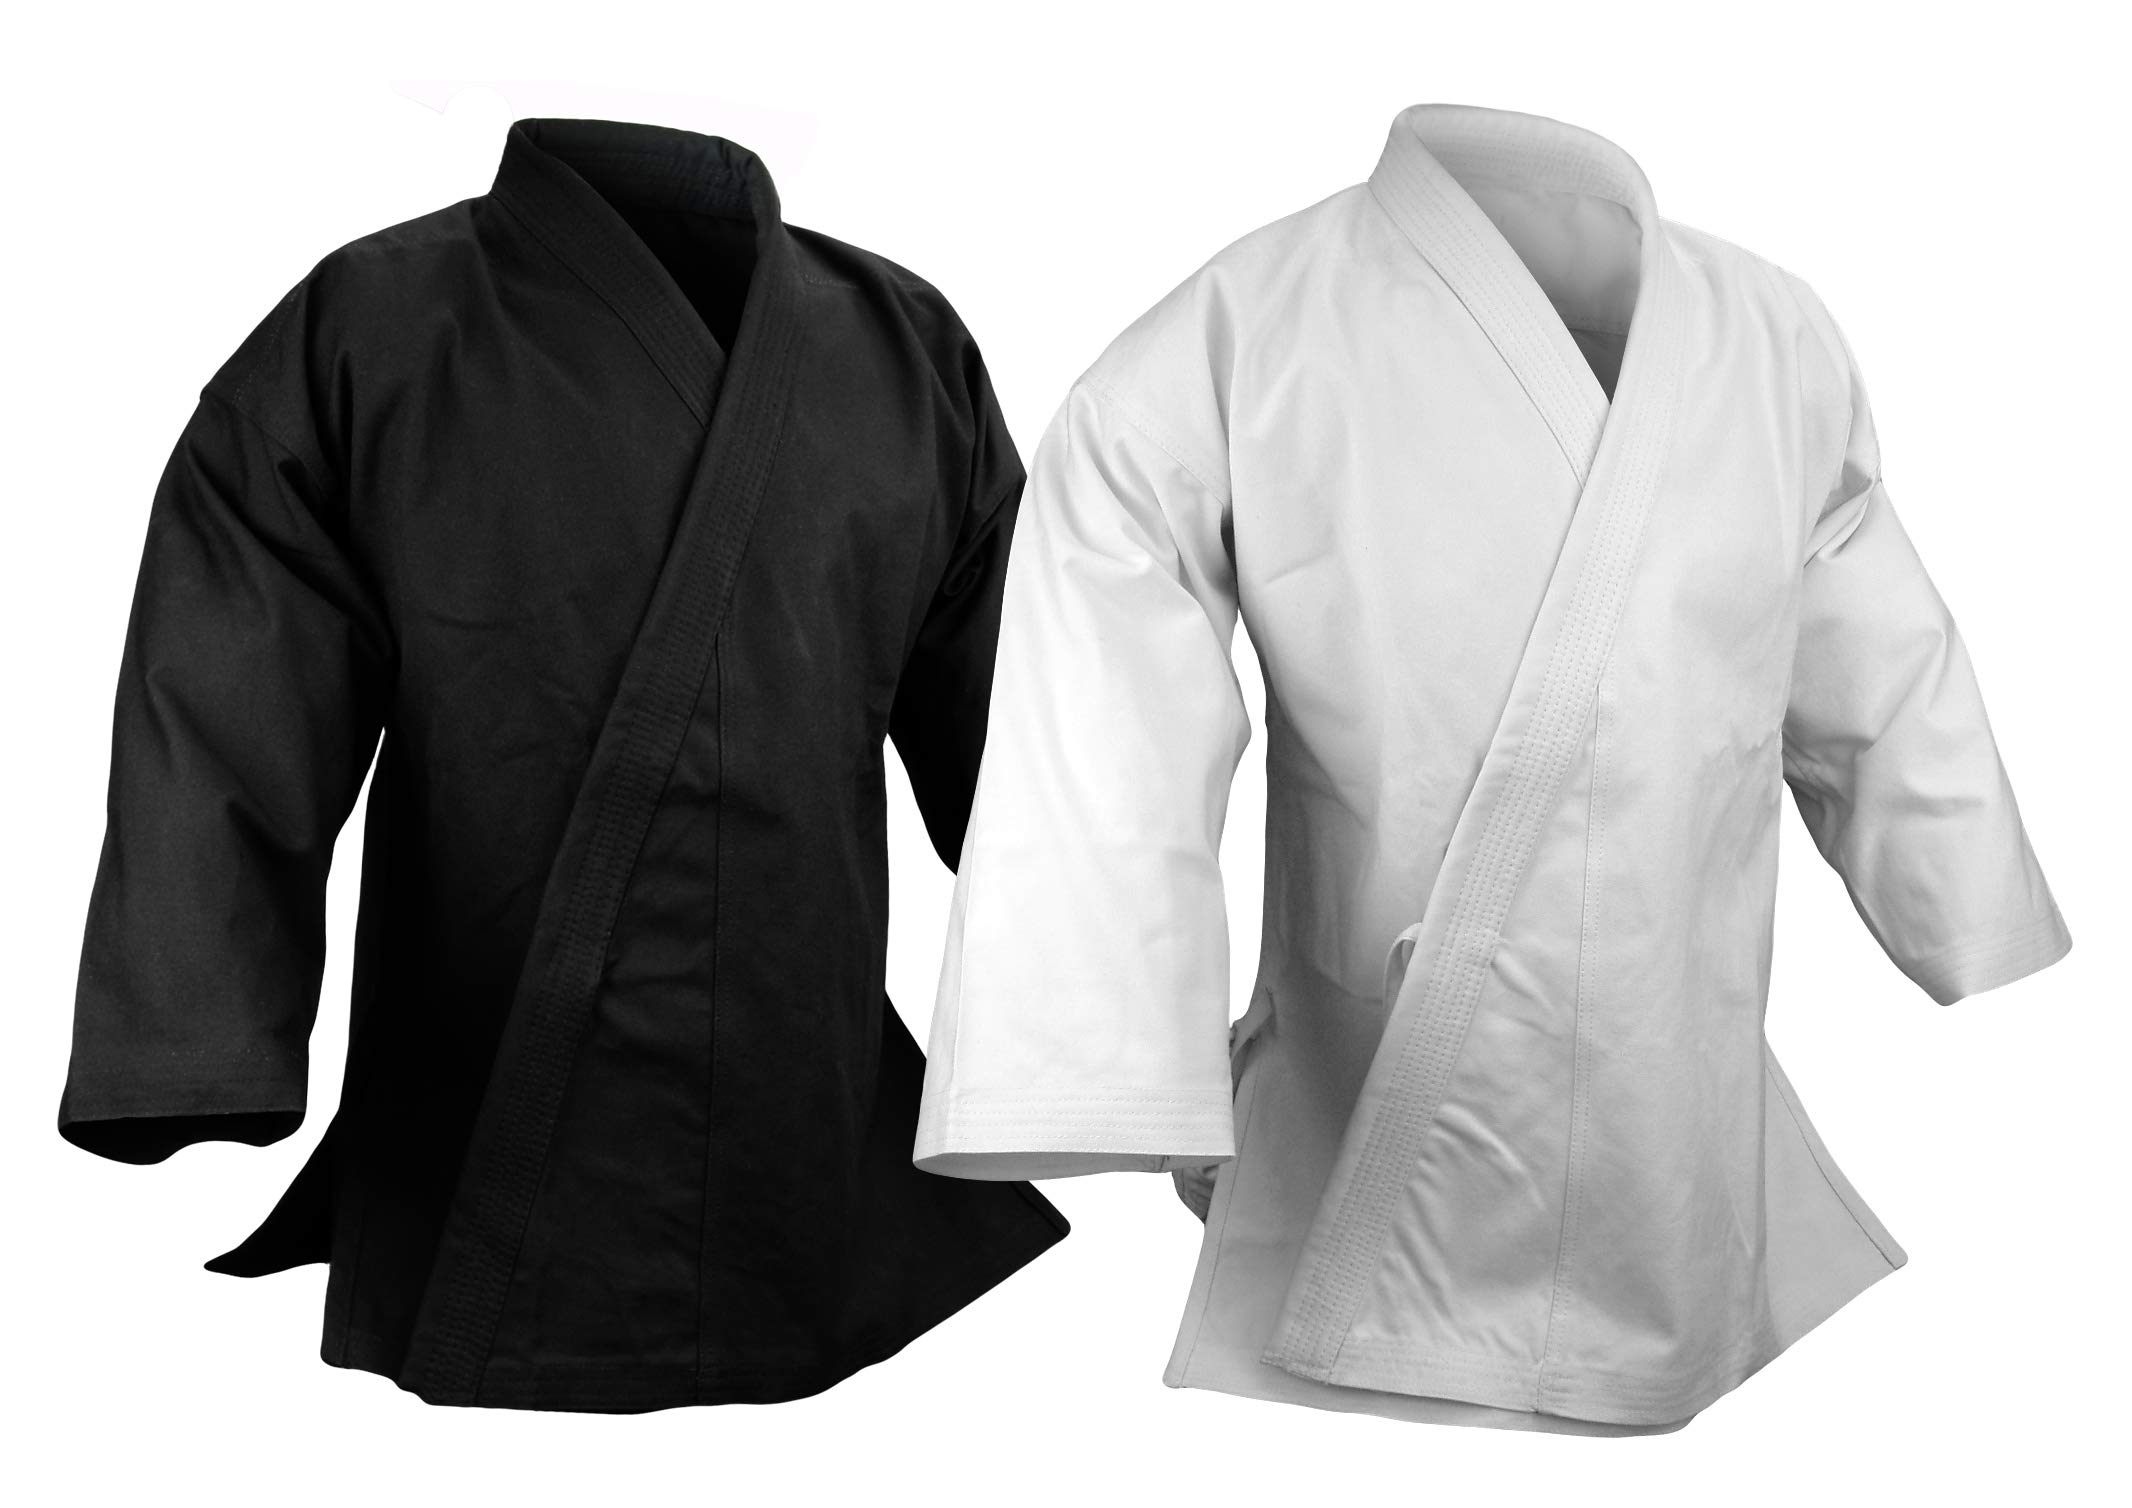 Prowin Corp 14 oz Ultra Heavy Karate Jacket Uniform Martial Arts Gi Black or White (Black, 7) by Prowin Corp